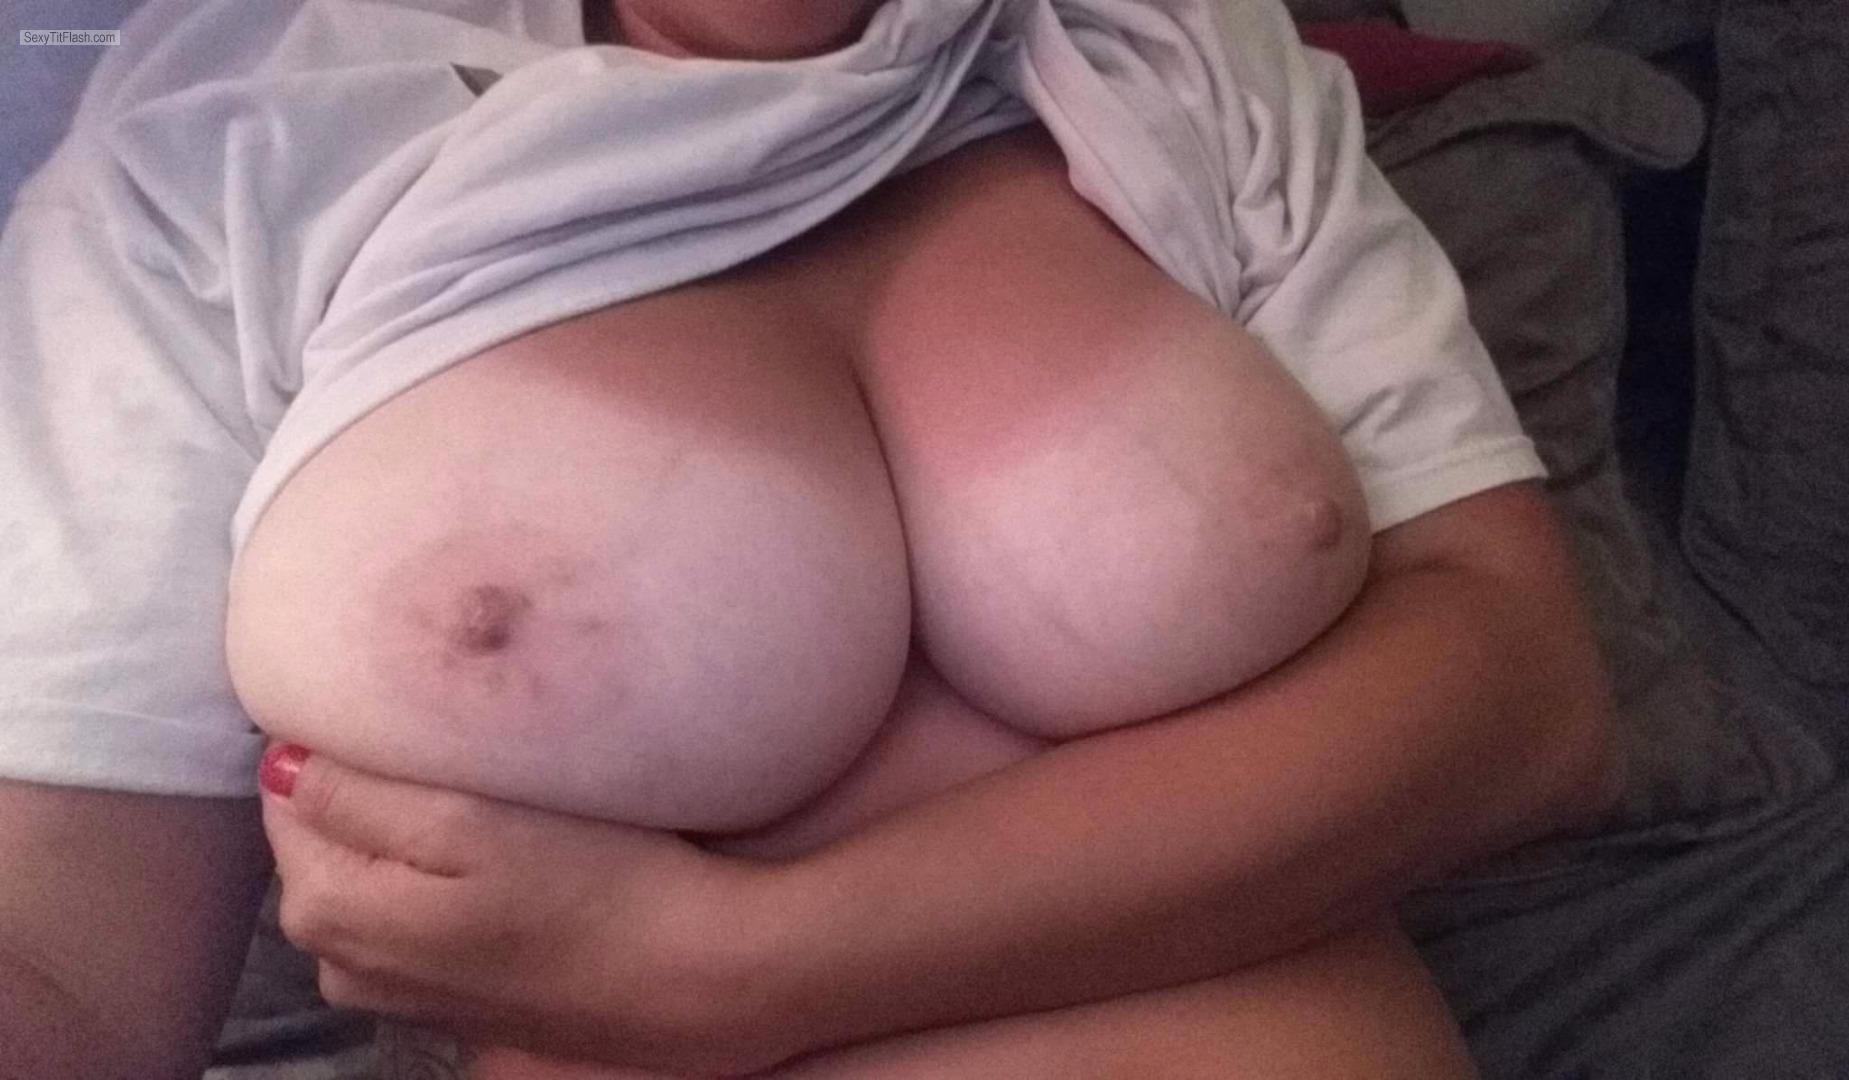 Tit Flash: My Very Big Tits - Topless Sexy1 from United Kingdom